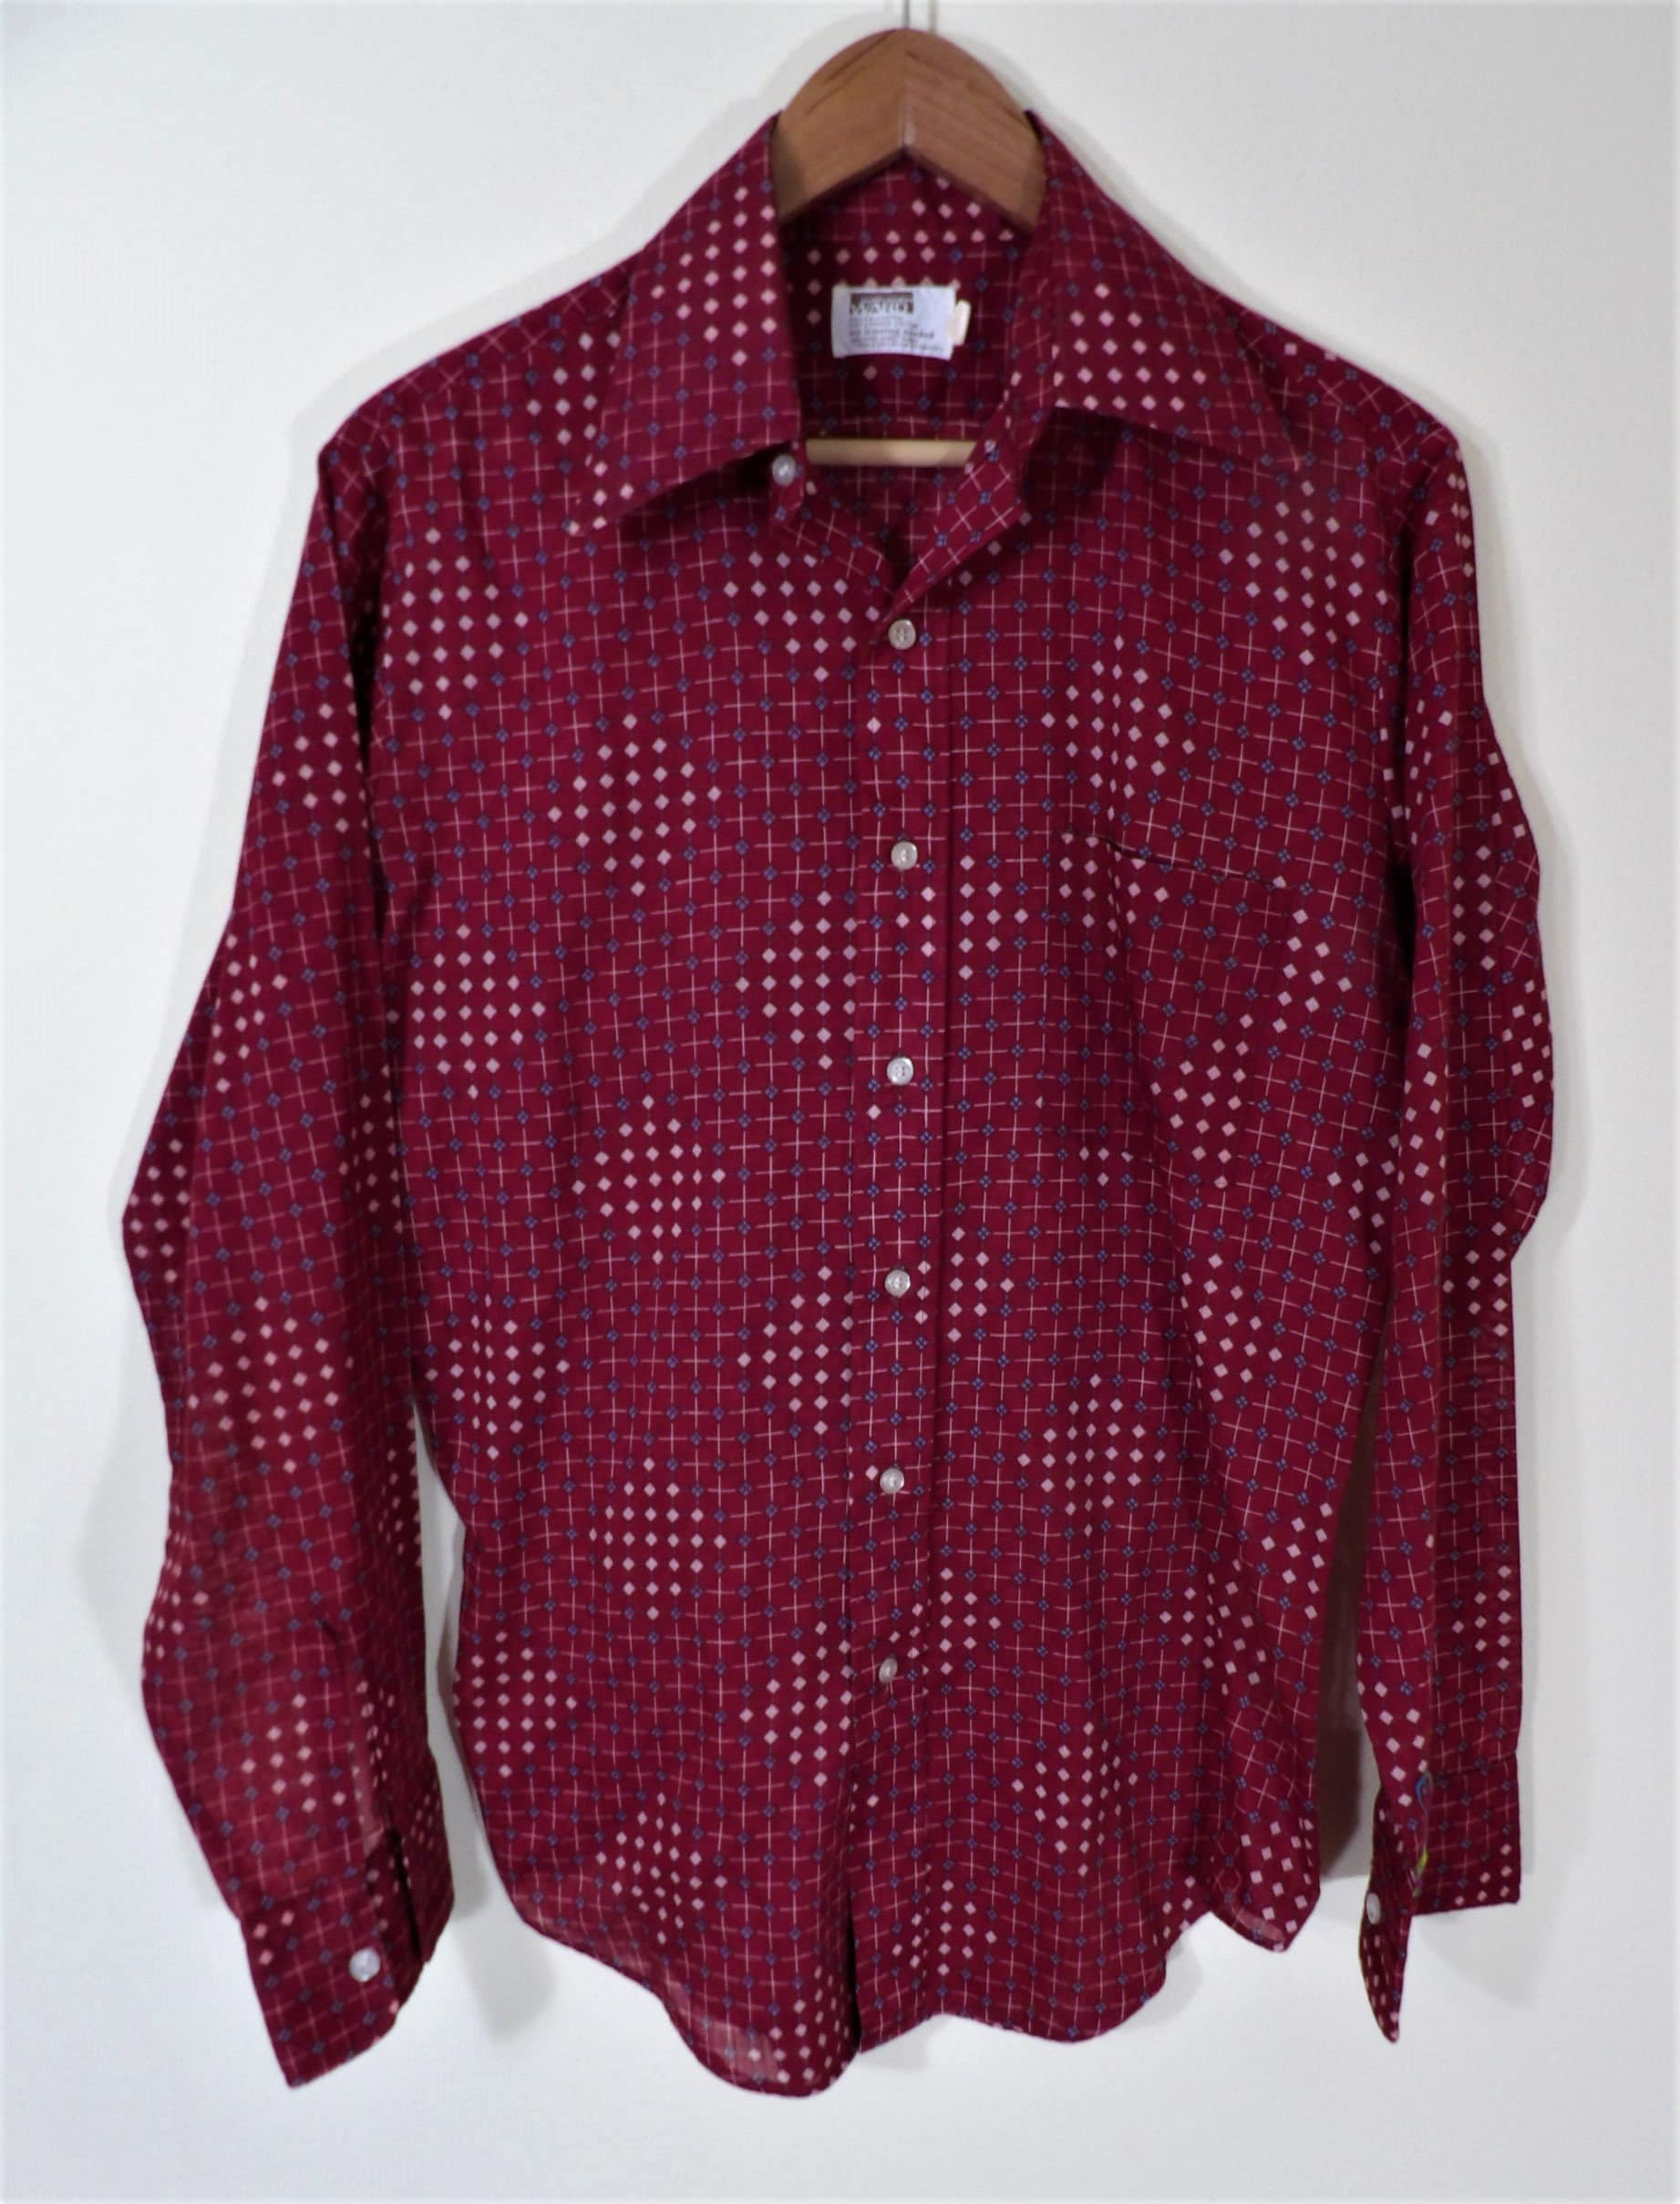 1970s Mens Shirt Styles – Vintage 70s Shirts for Guys 1970s Montgomery Ward Disco Maroon Geometric Lightweight Sheer Elongated Collar Shirt Mens Chest 44 $0.00 AT vintagedancer.com